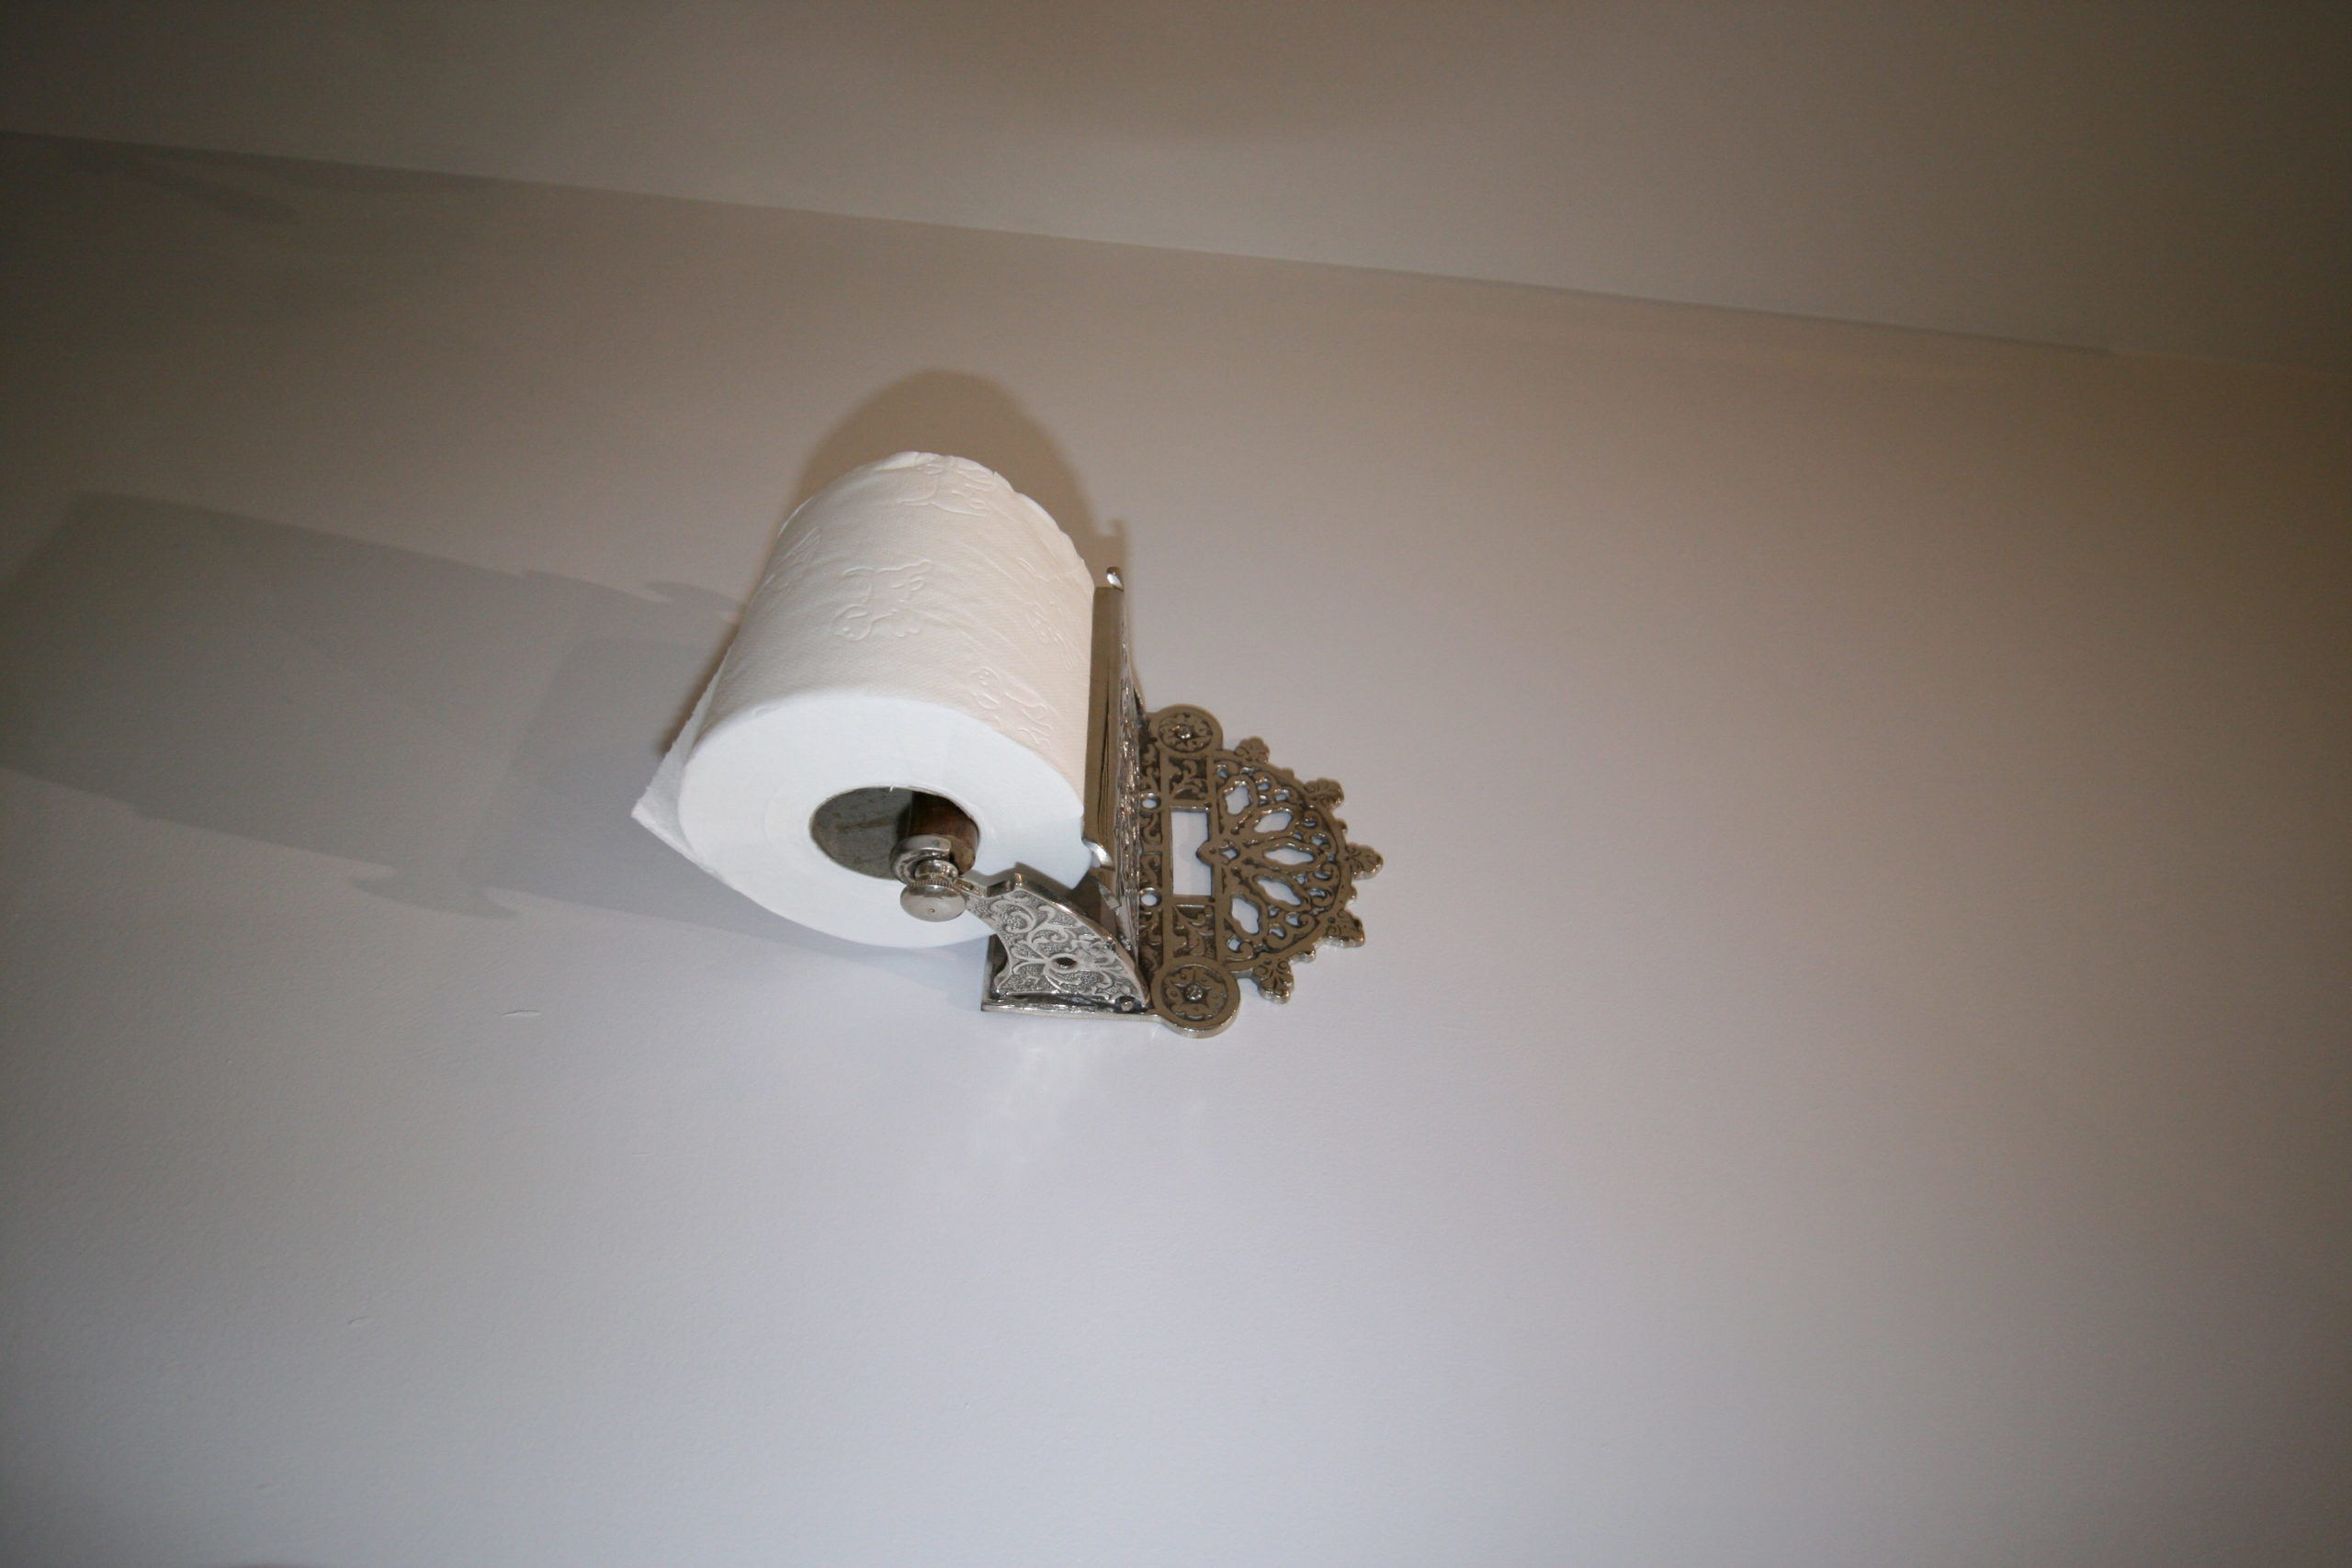 Bathroom - Reproduction Victorian style toilet roll holder